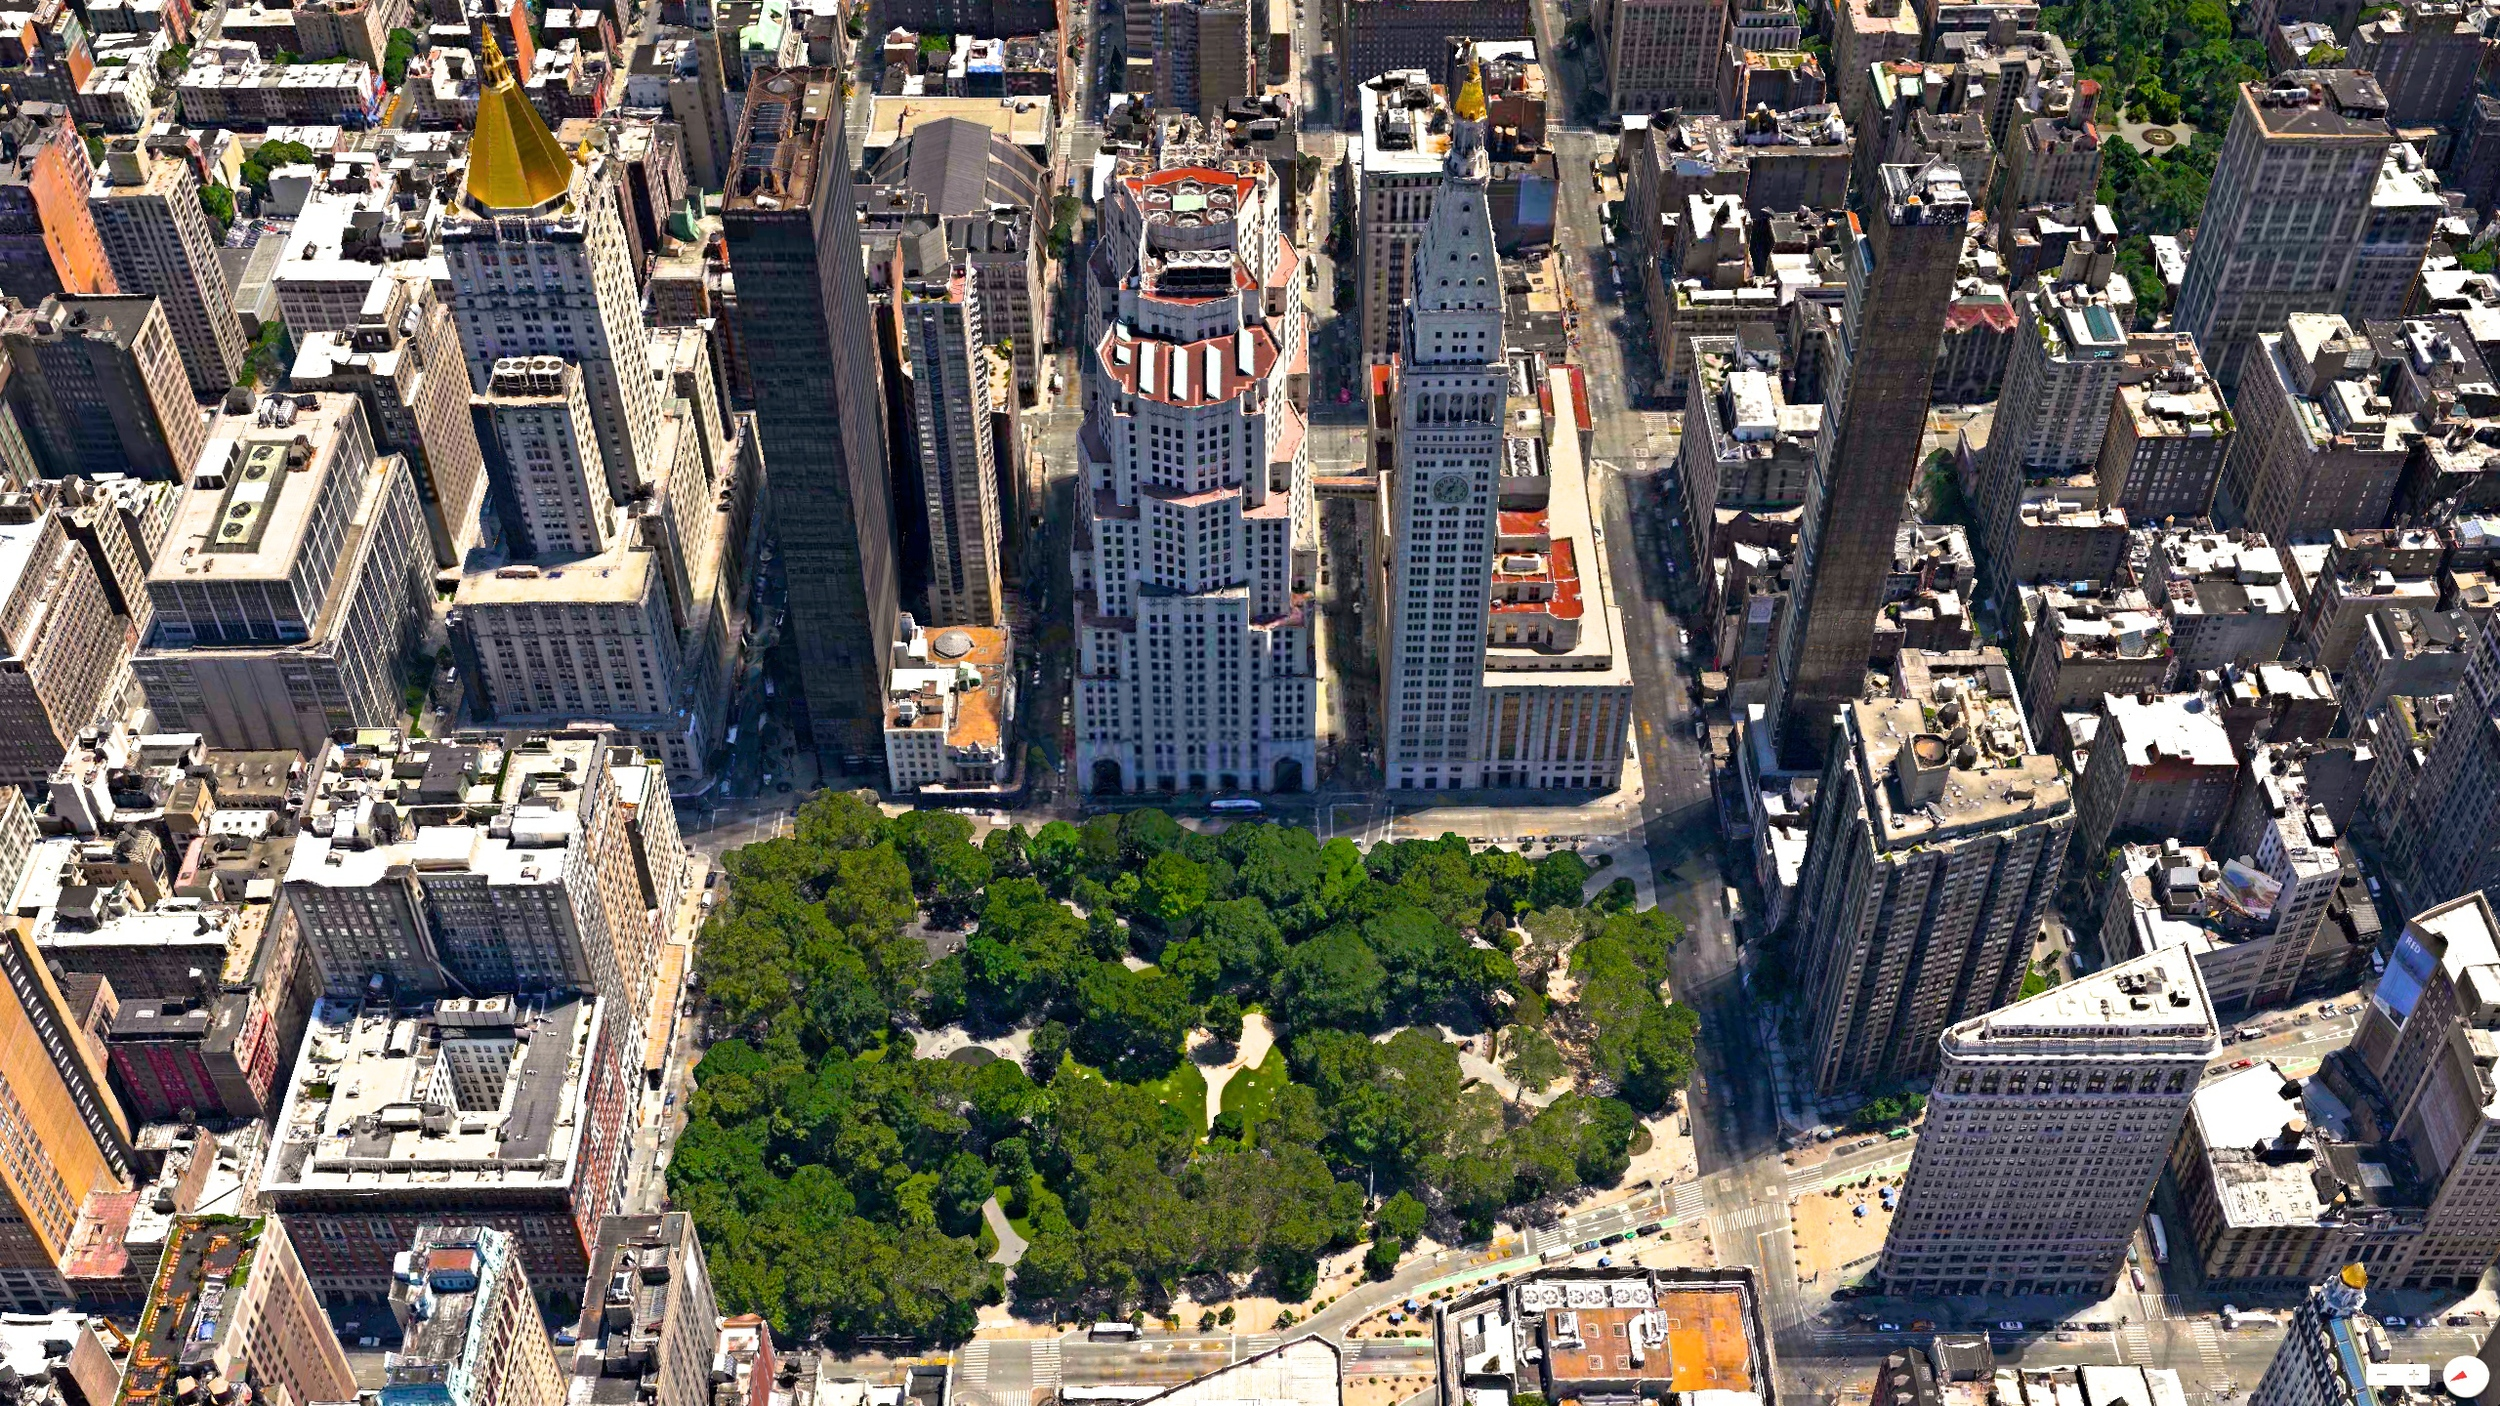 3D Sunday - 1/12/2014    Madison Square Park   New York City, New York, USA   40.742054°N 73.987984°W